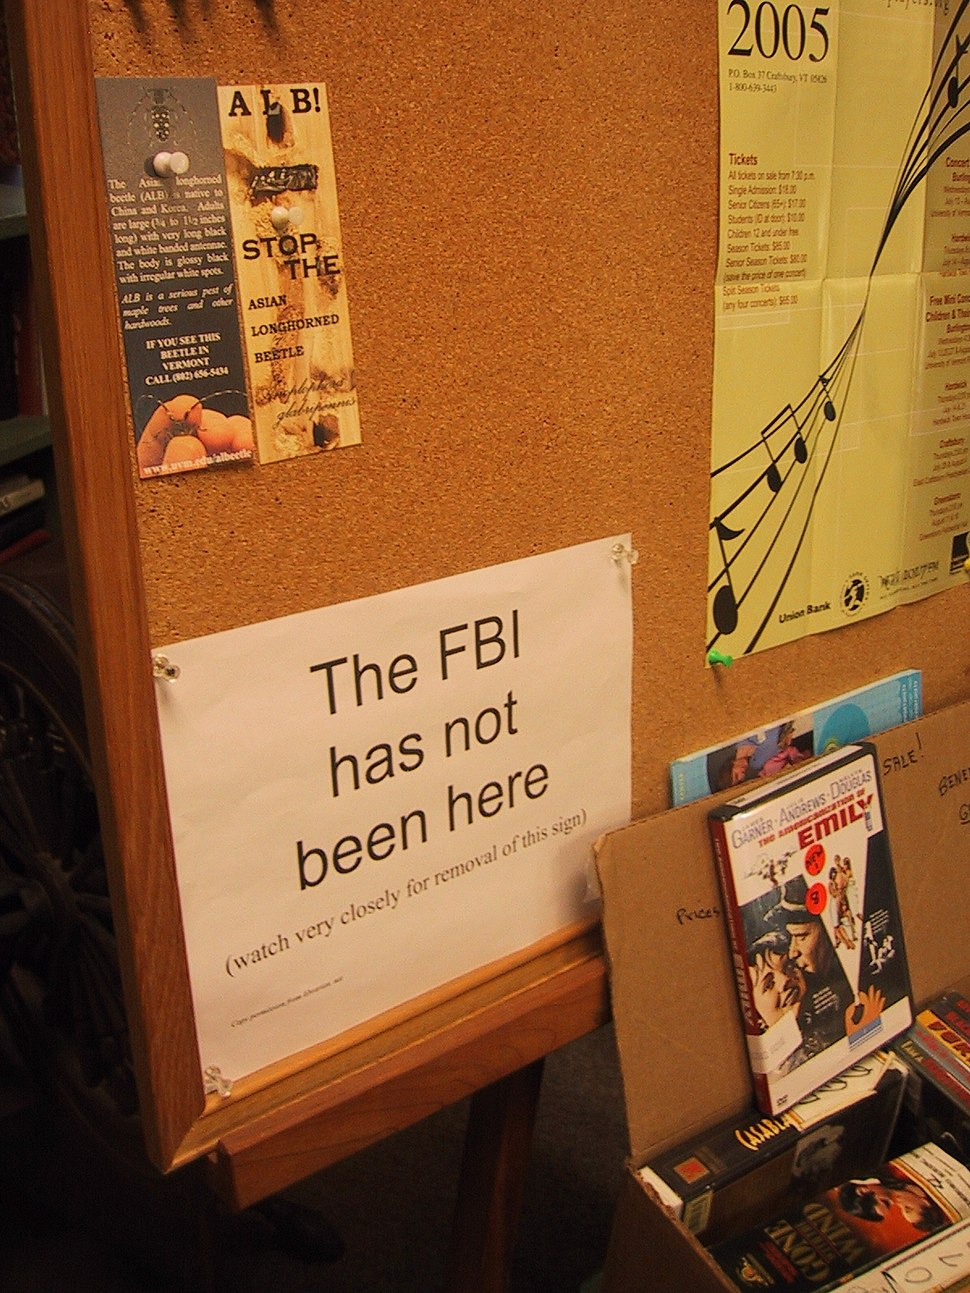 The FBI has not been here